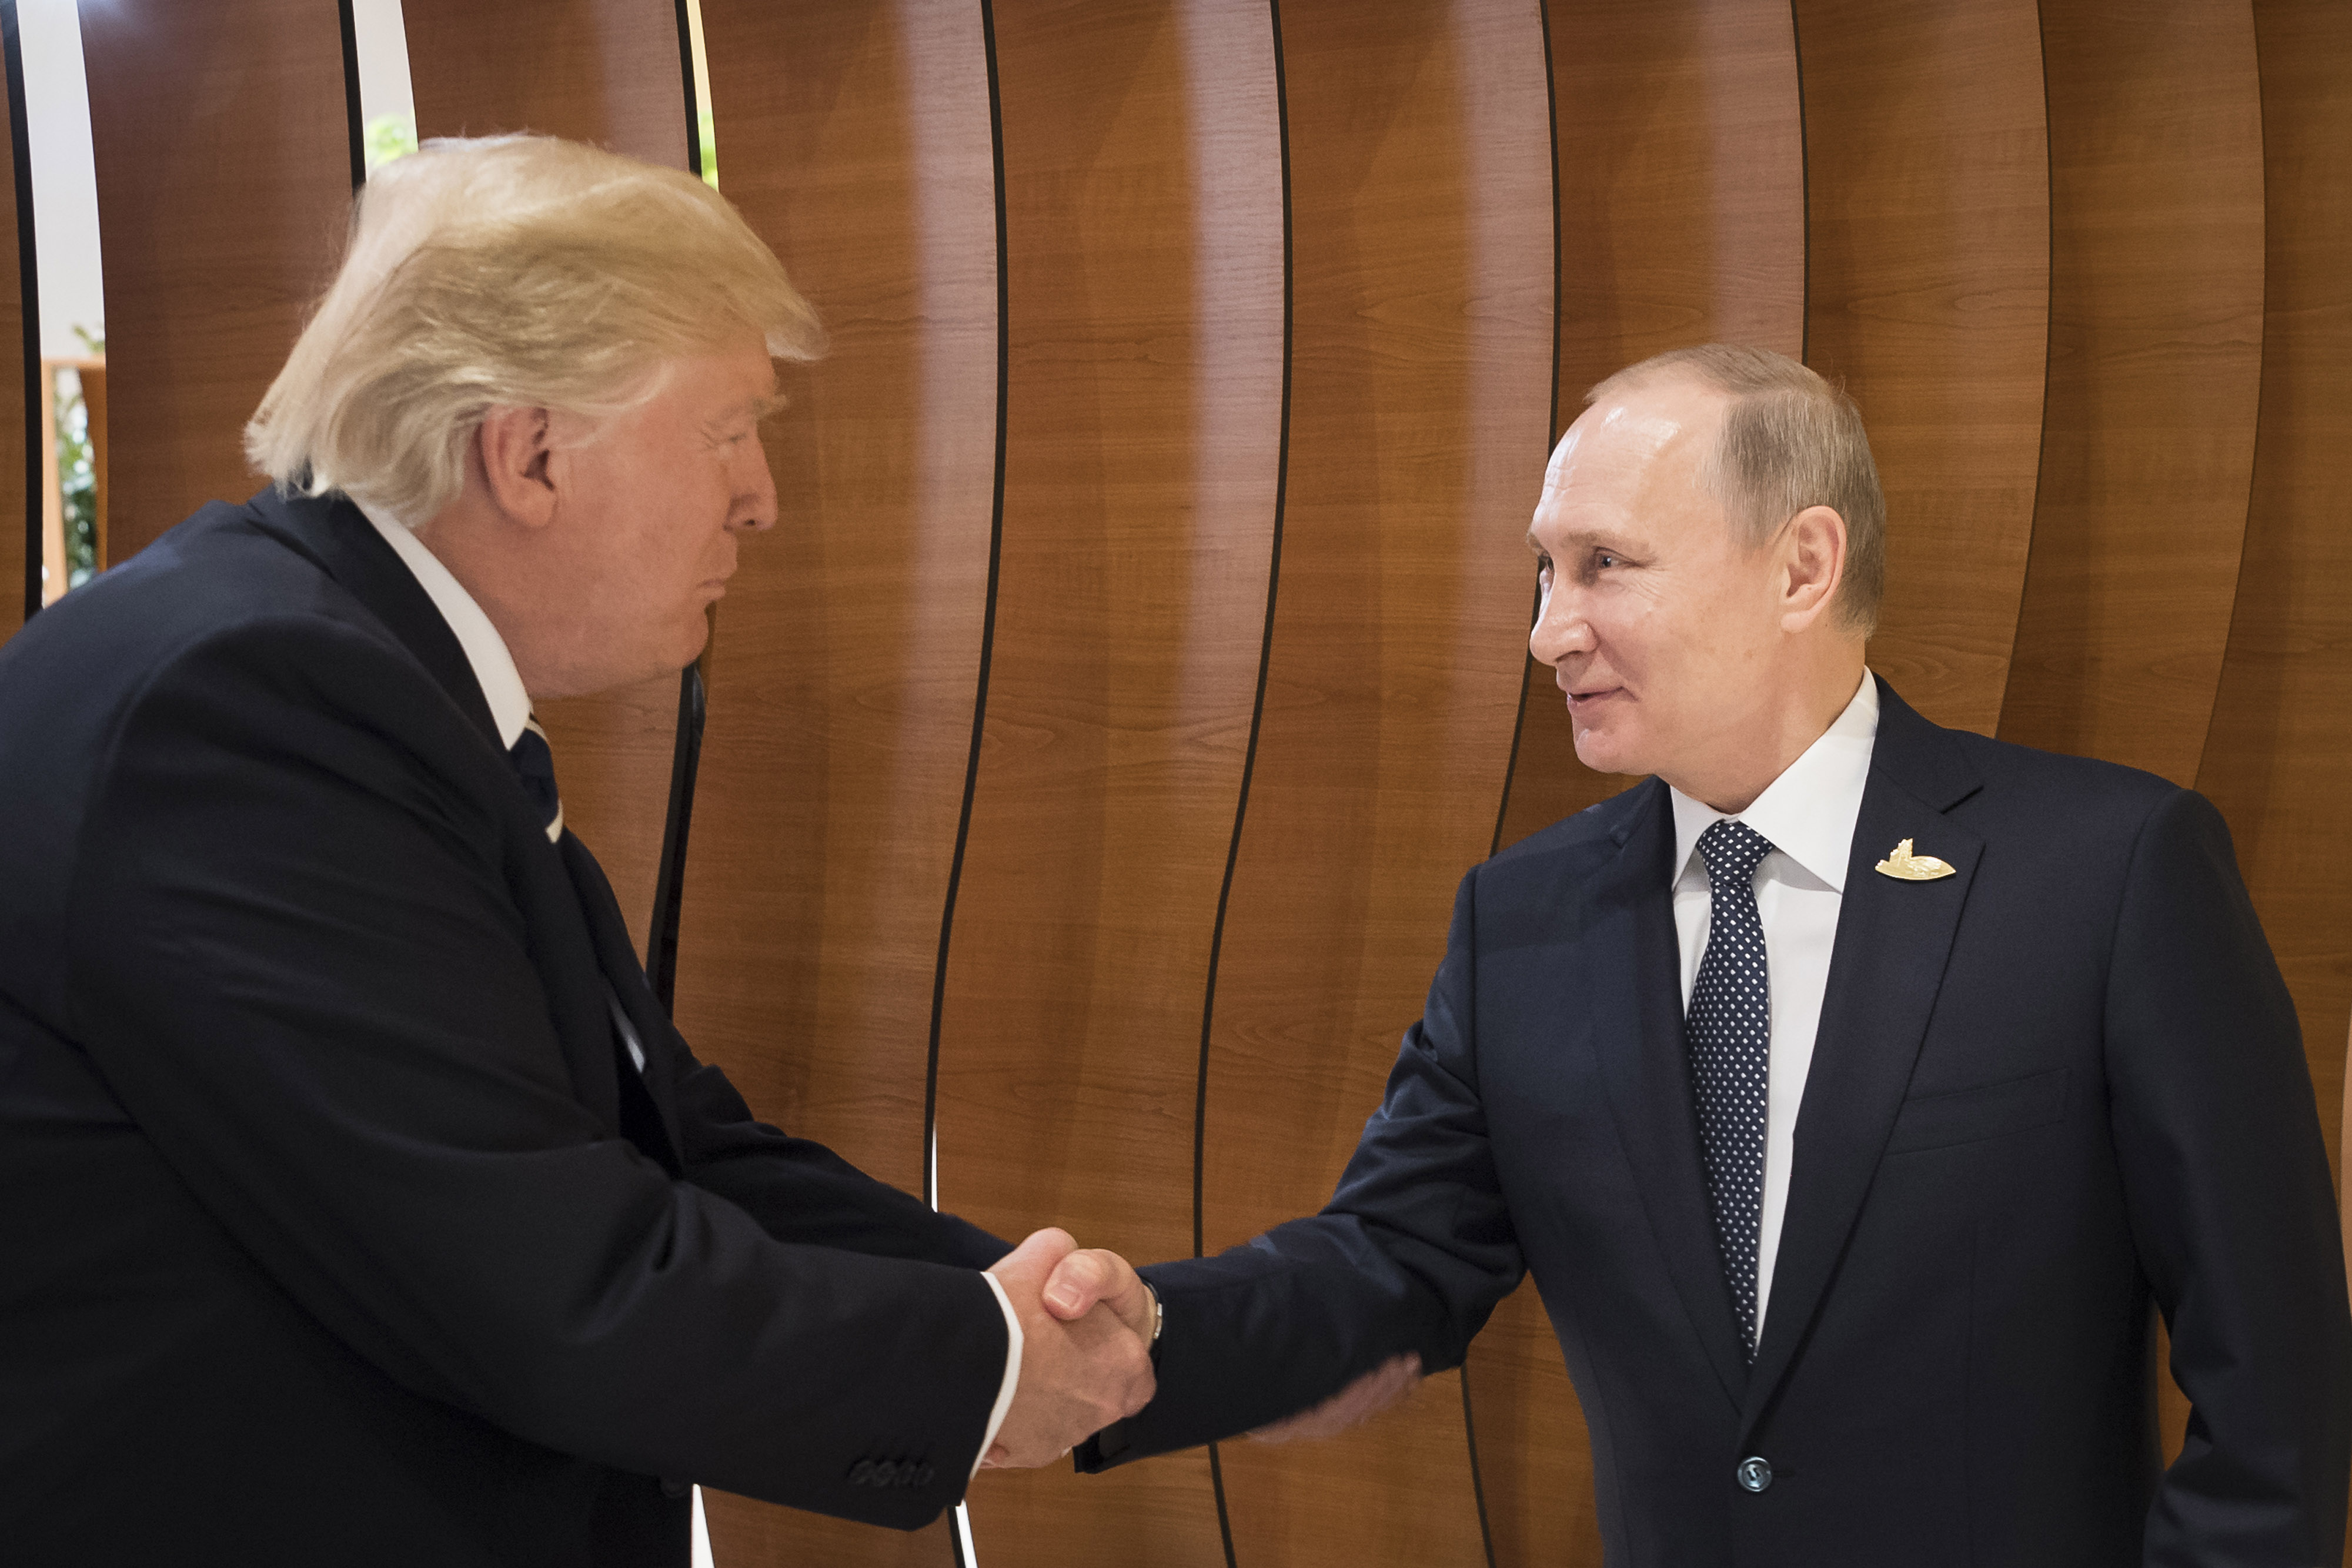 G20 President Donald Trump Handshake With Vladimir Putin Time